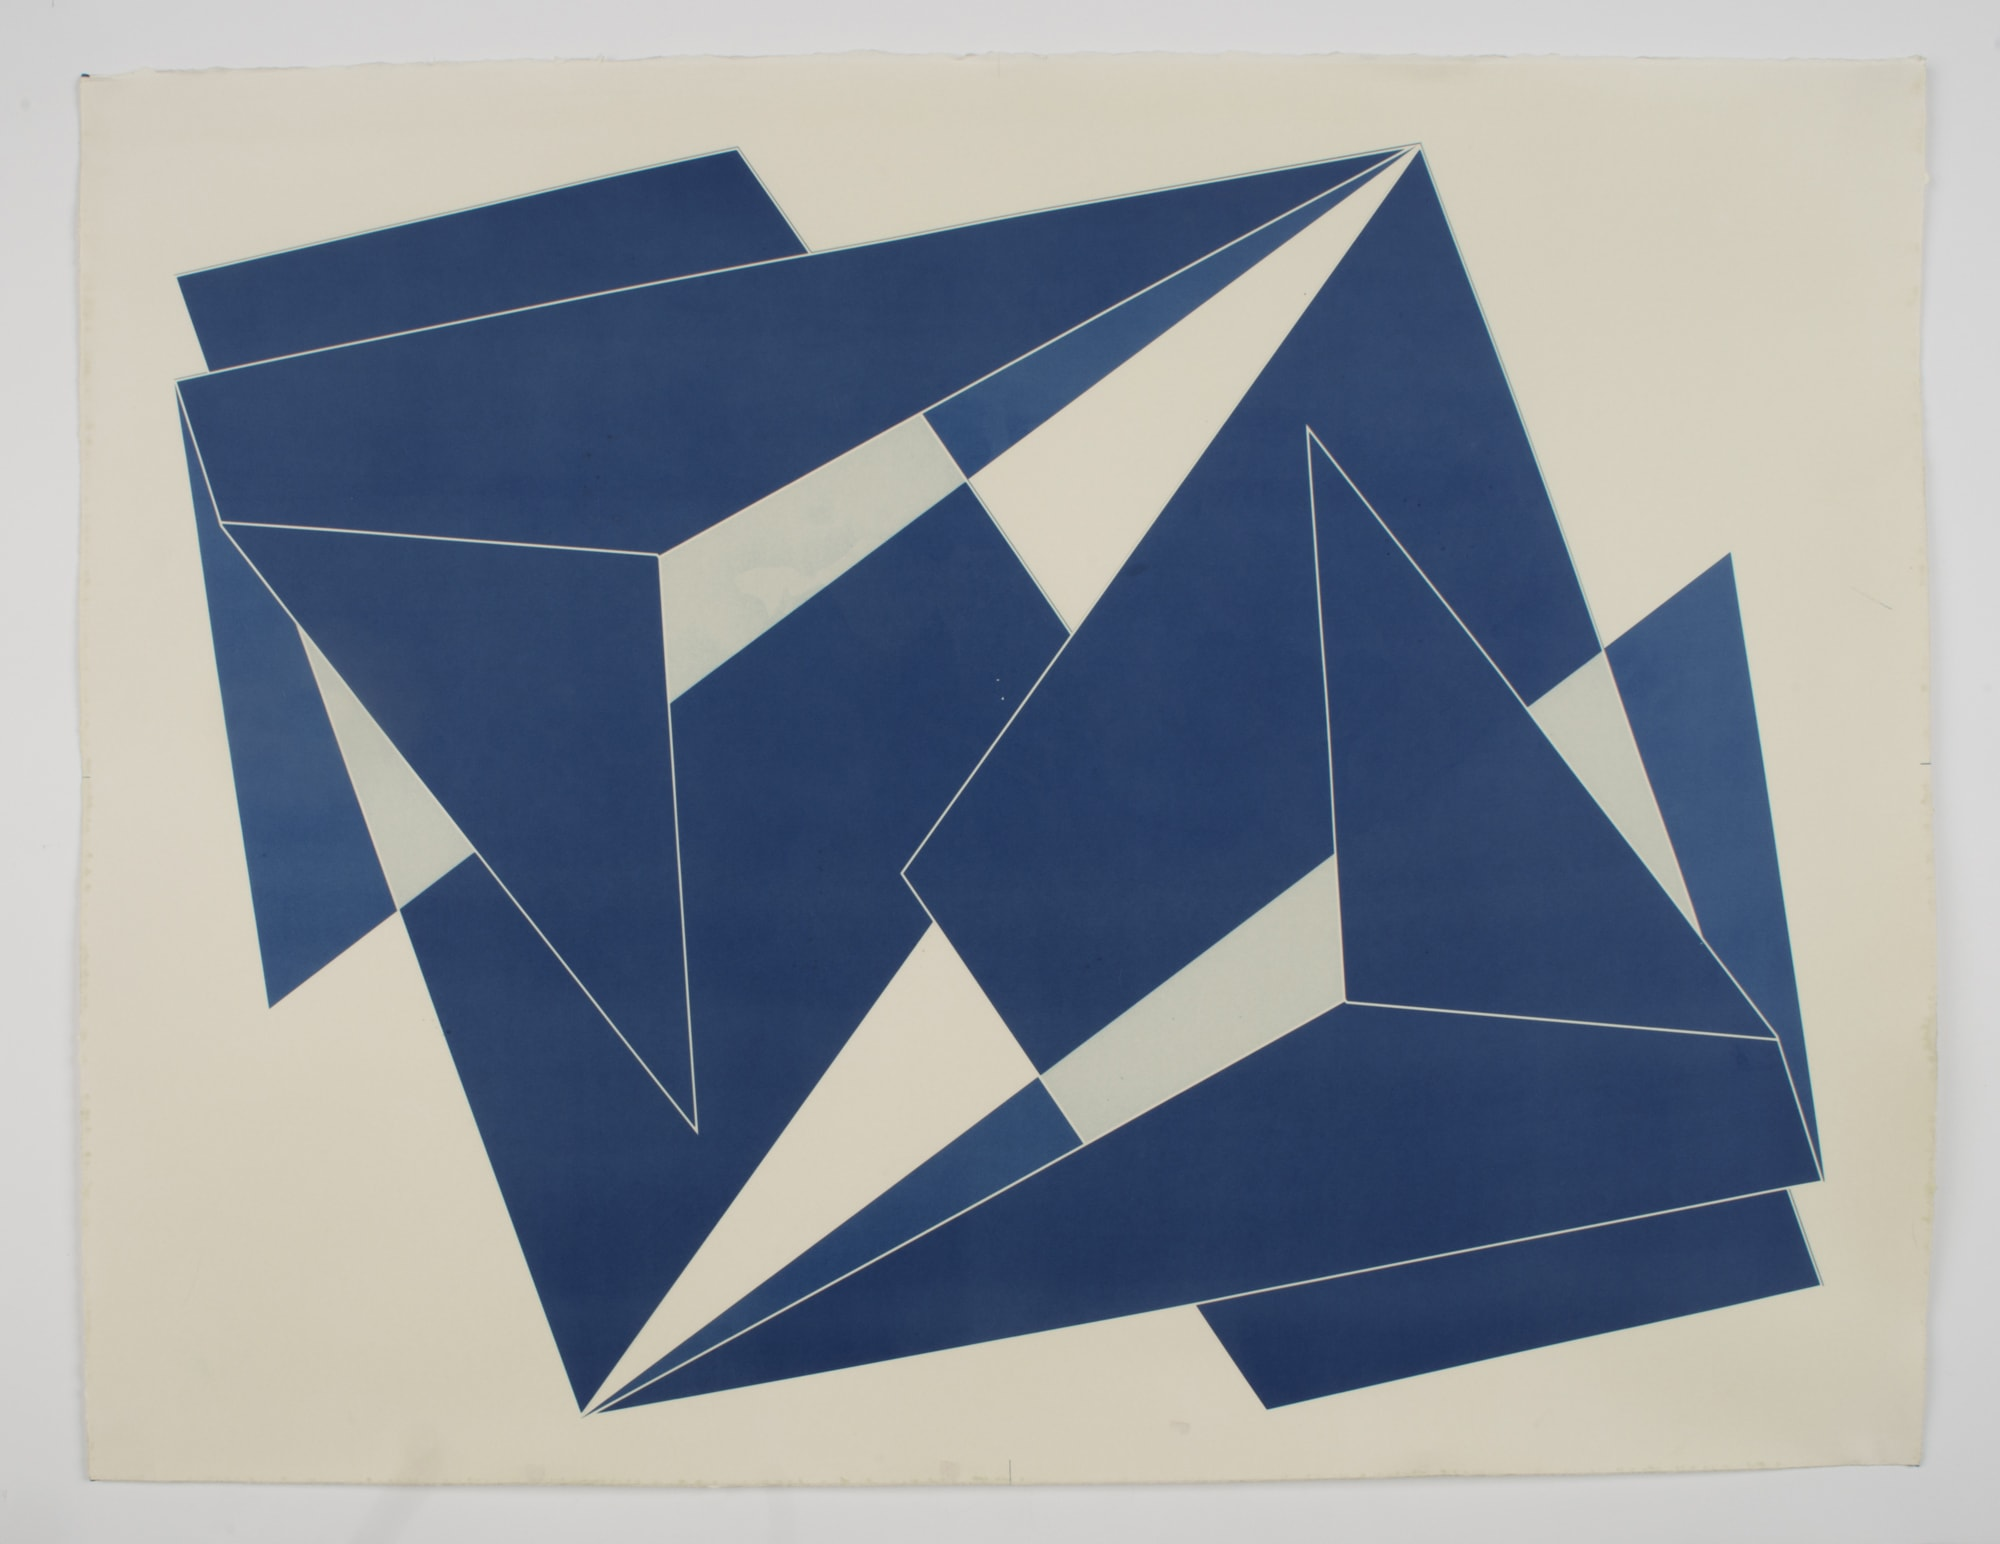 "<span class=""link fancybox-details-link""><a href=""/content/feature/165/artworks691/"">View Detail Page</a></span><div class=""medium"">Cyanotype on cotton rag paper<br /> Framed<br /> Unique</div> <div class=""dimensions"">76.2 x 61 cm<br /> 30 x 24 in</div>"